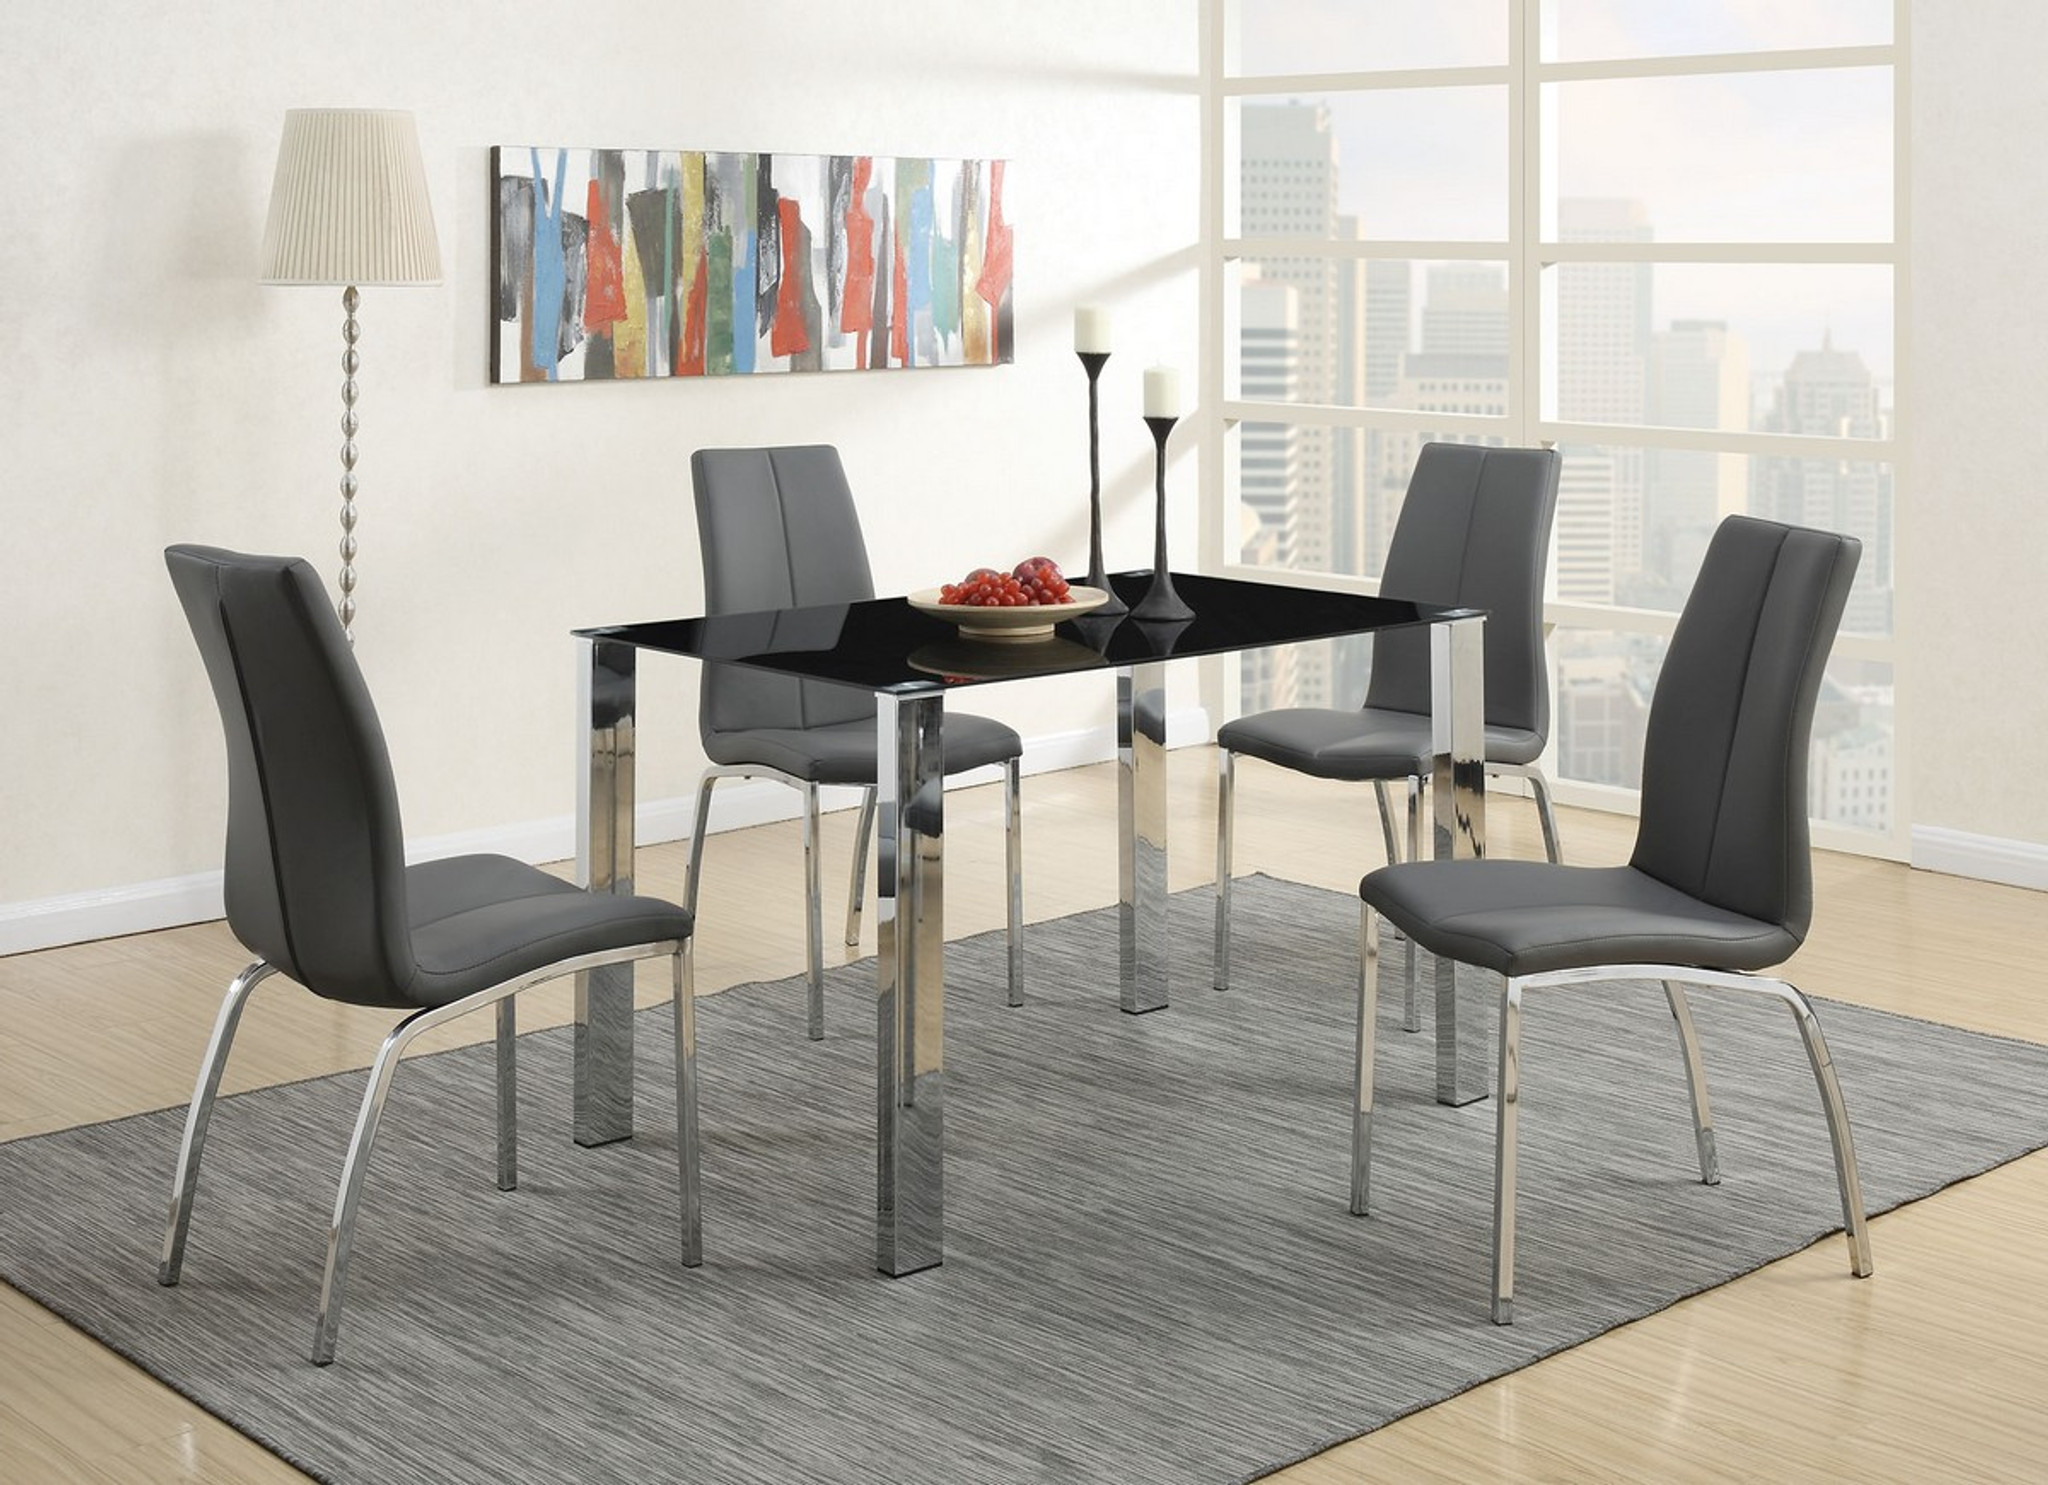 Picture of: Kassa Mall Home Furniture F2204 F1438 5 Pcs Grey Modern Dining Room Set With 8mm Tempered Glass Top